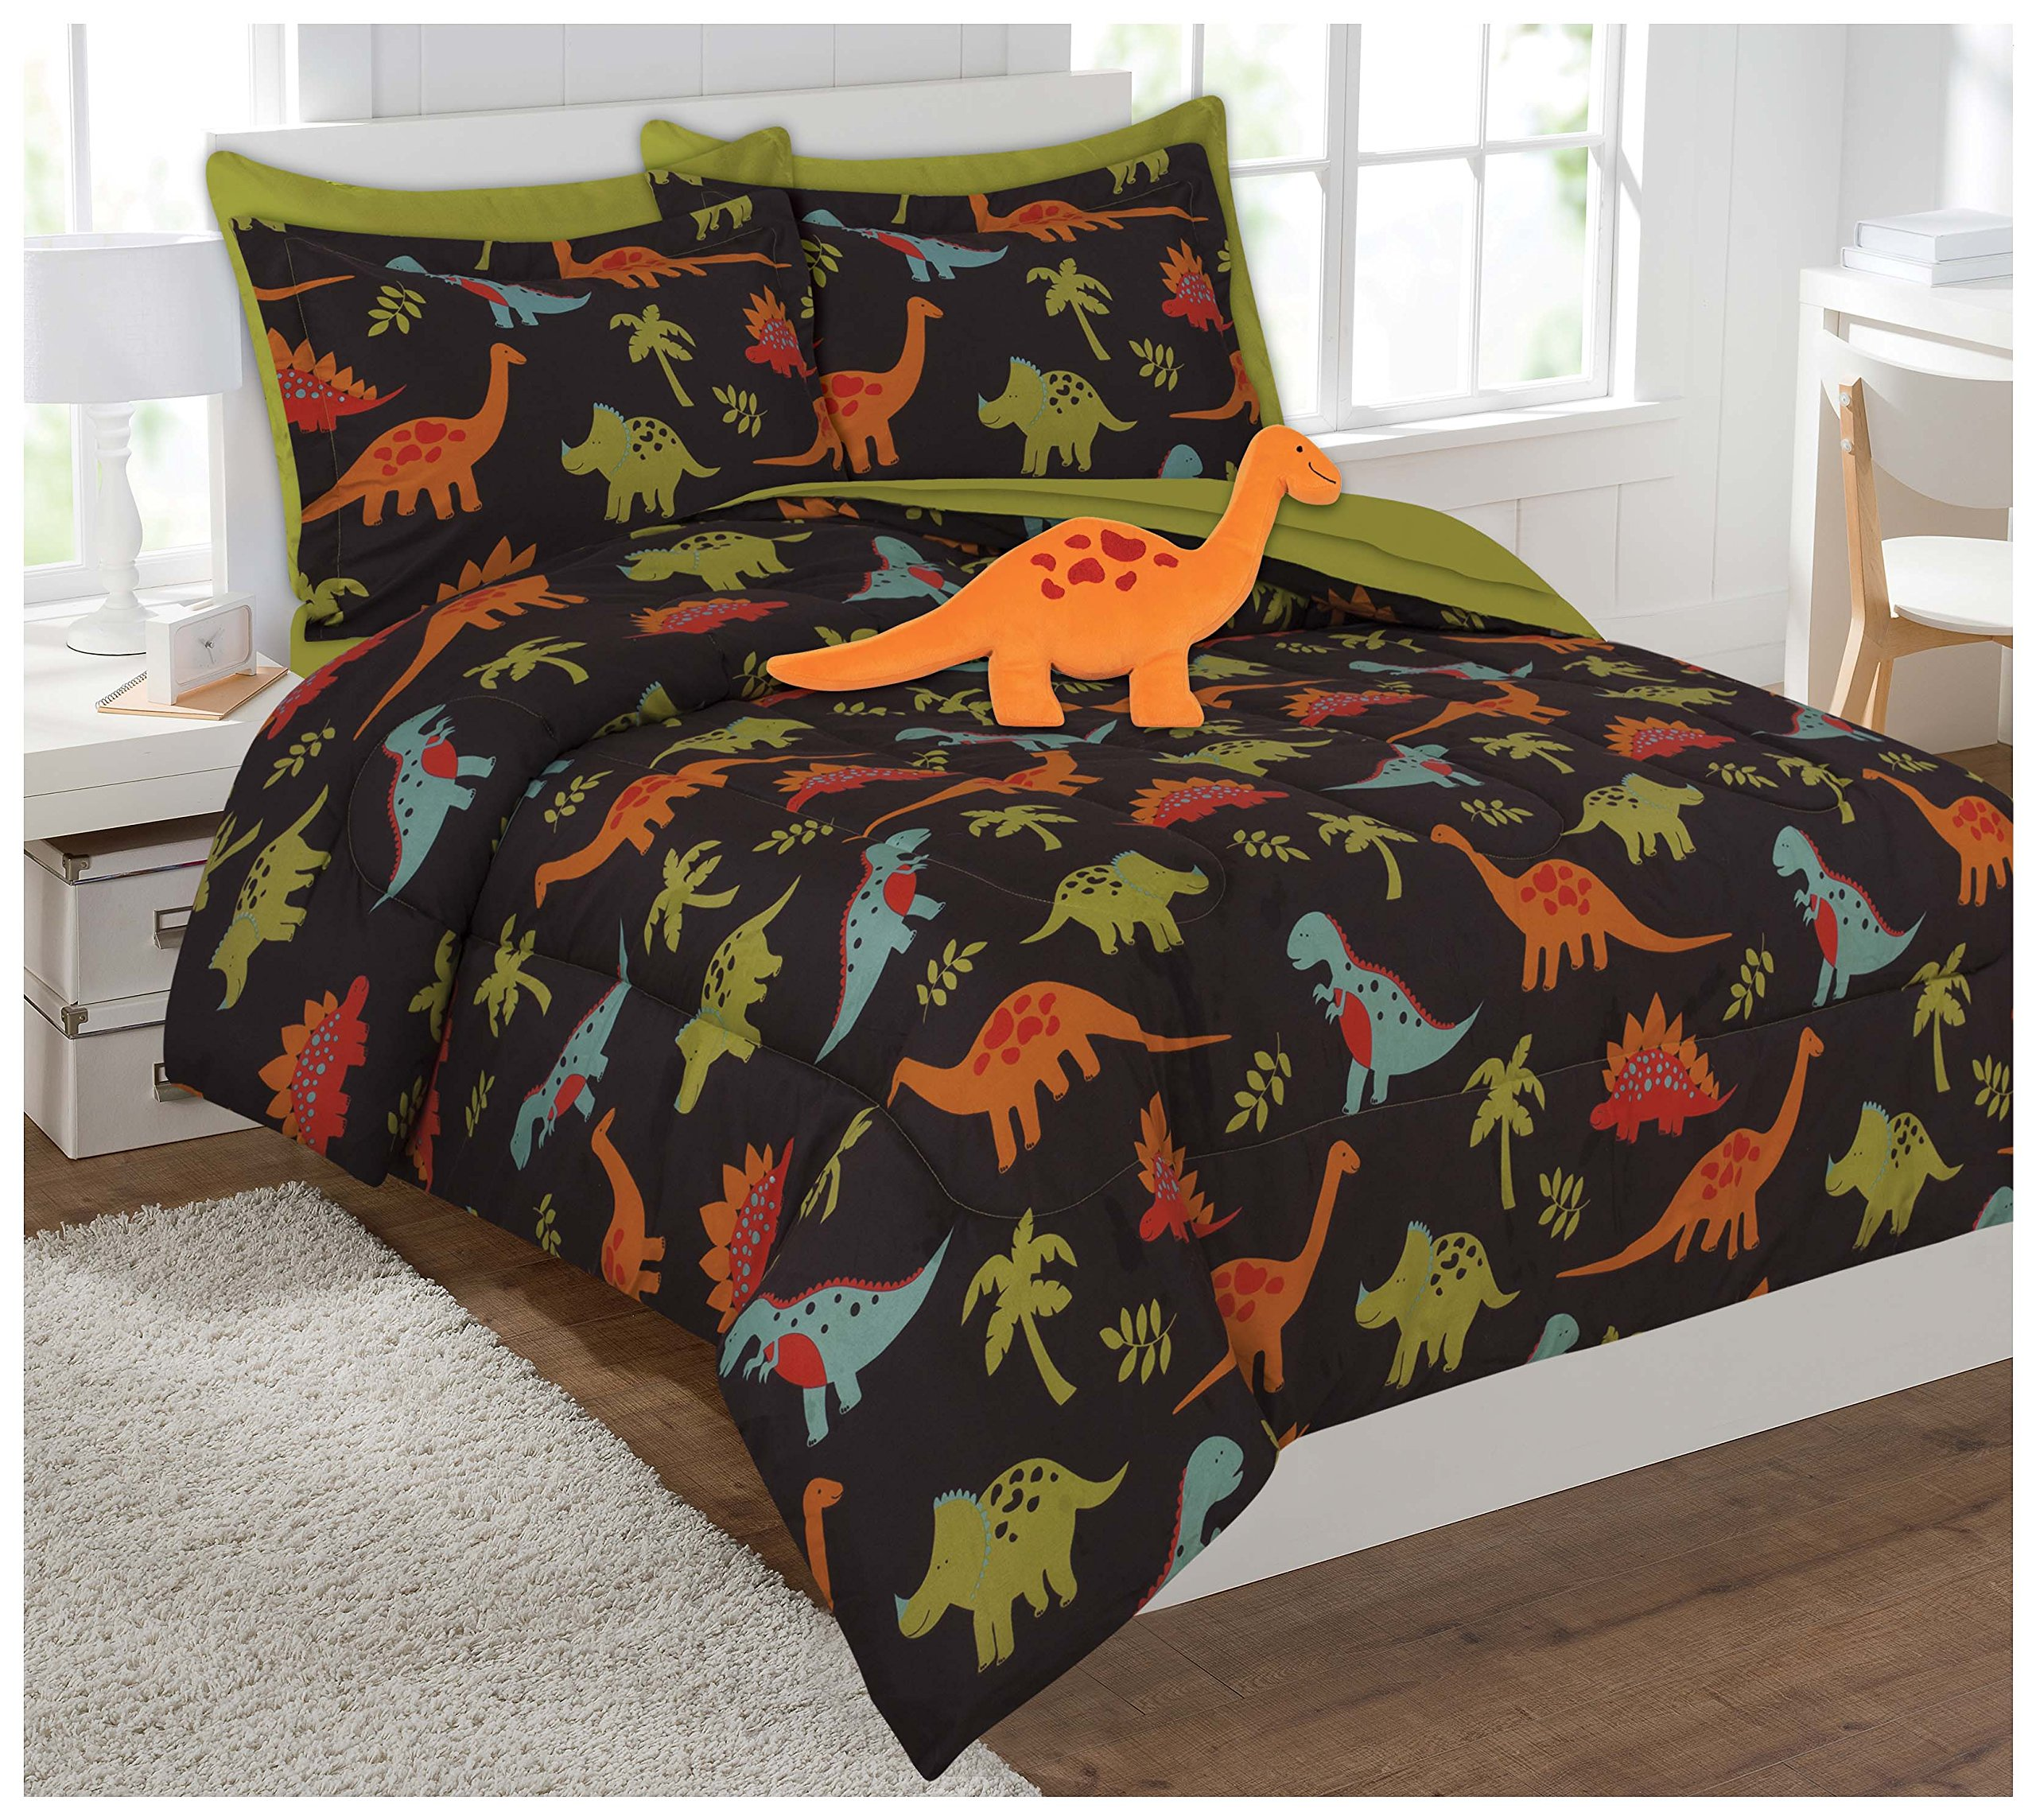 Fancy Collection 6 Pc Kids/teens Dinosaur Brown Orange Green Blue Luxury Comforter Furry Buddy Included # Dino Brown